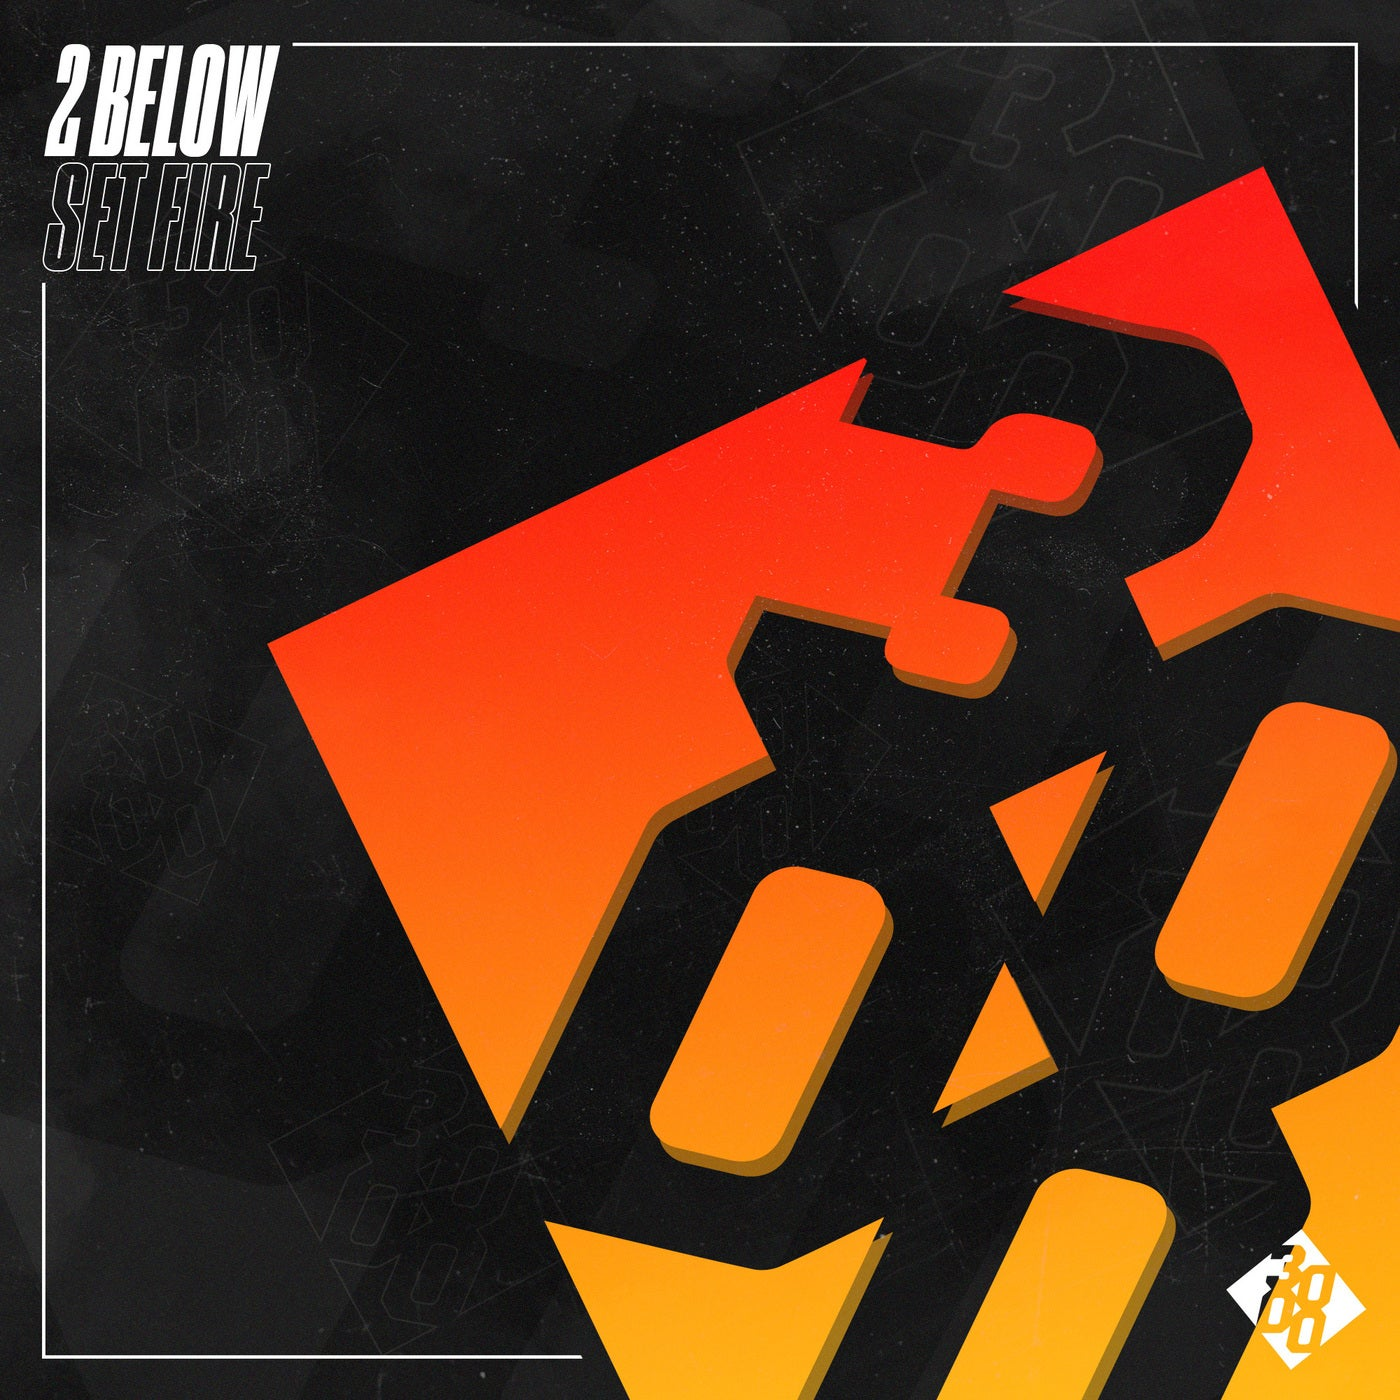 2 Below - Set Fire [Out Now] Image